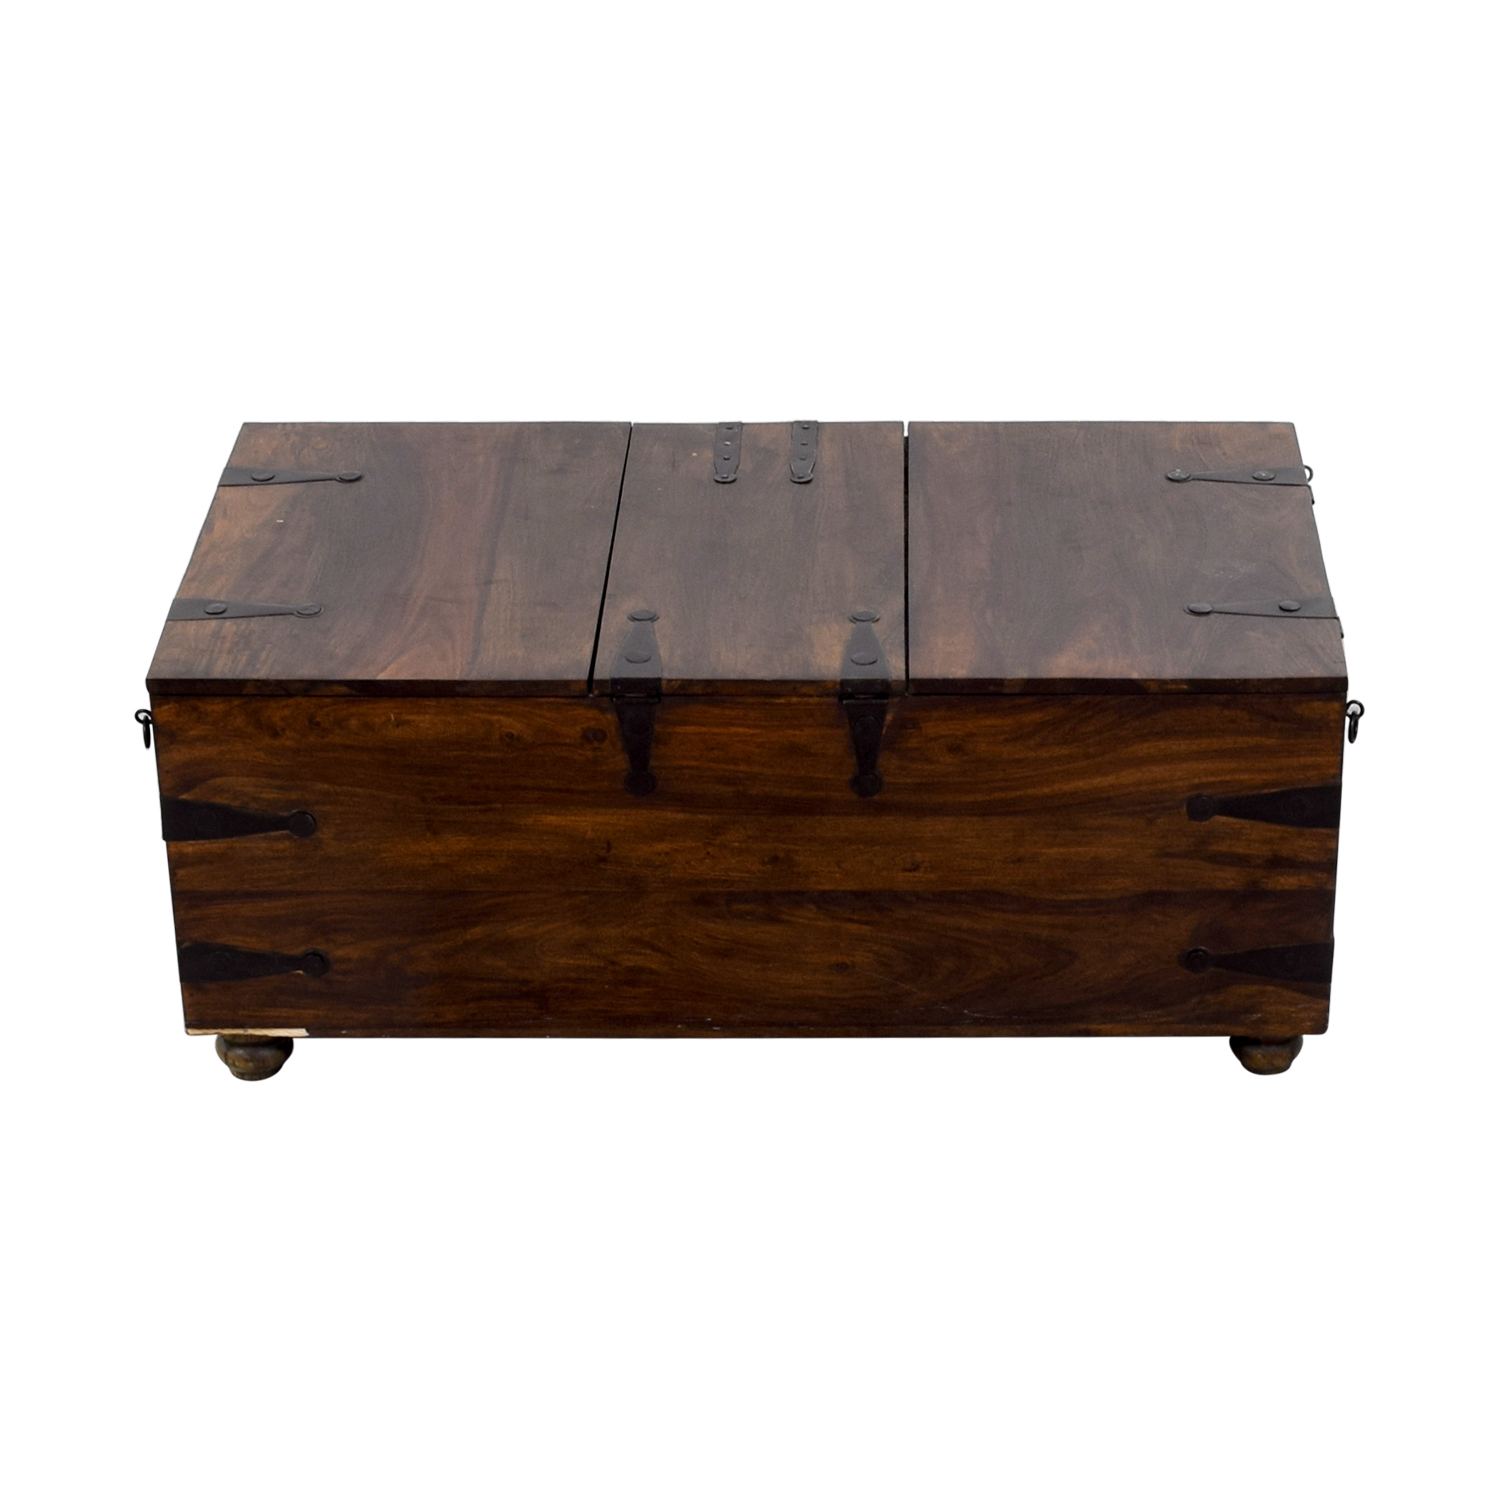 Crate & Barrel Crate & Barrel Trunk Coffee Table nyc